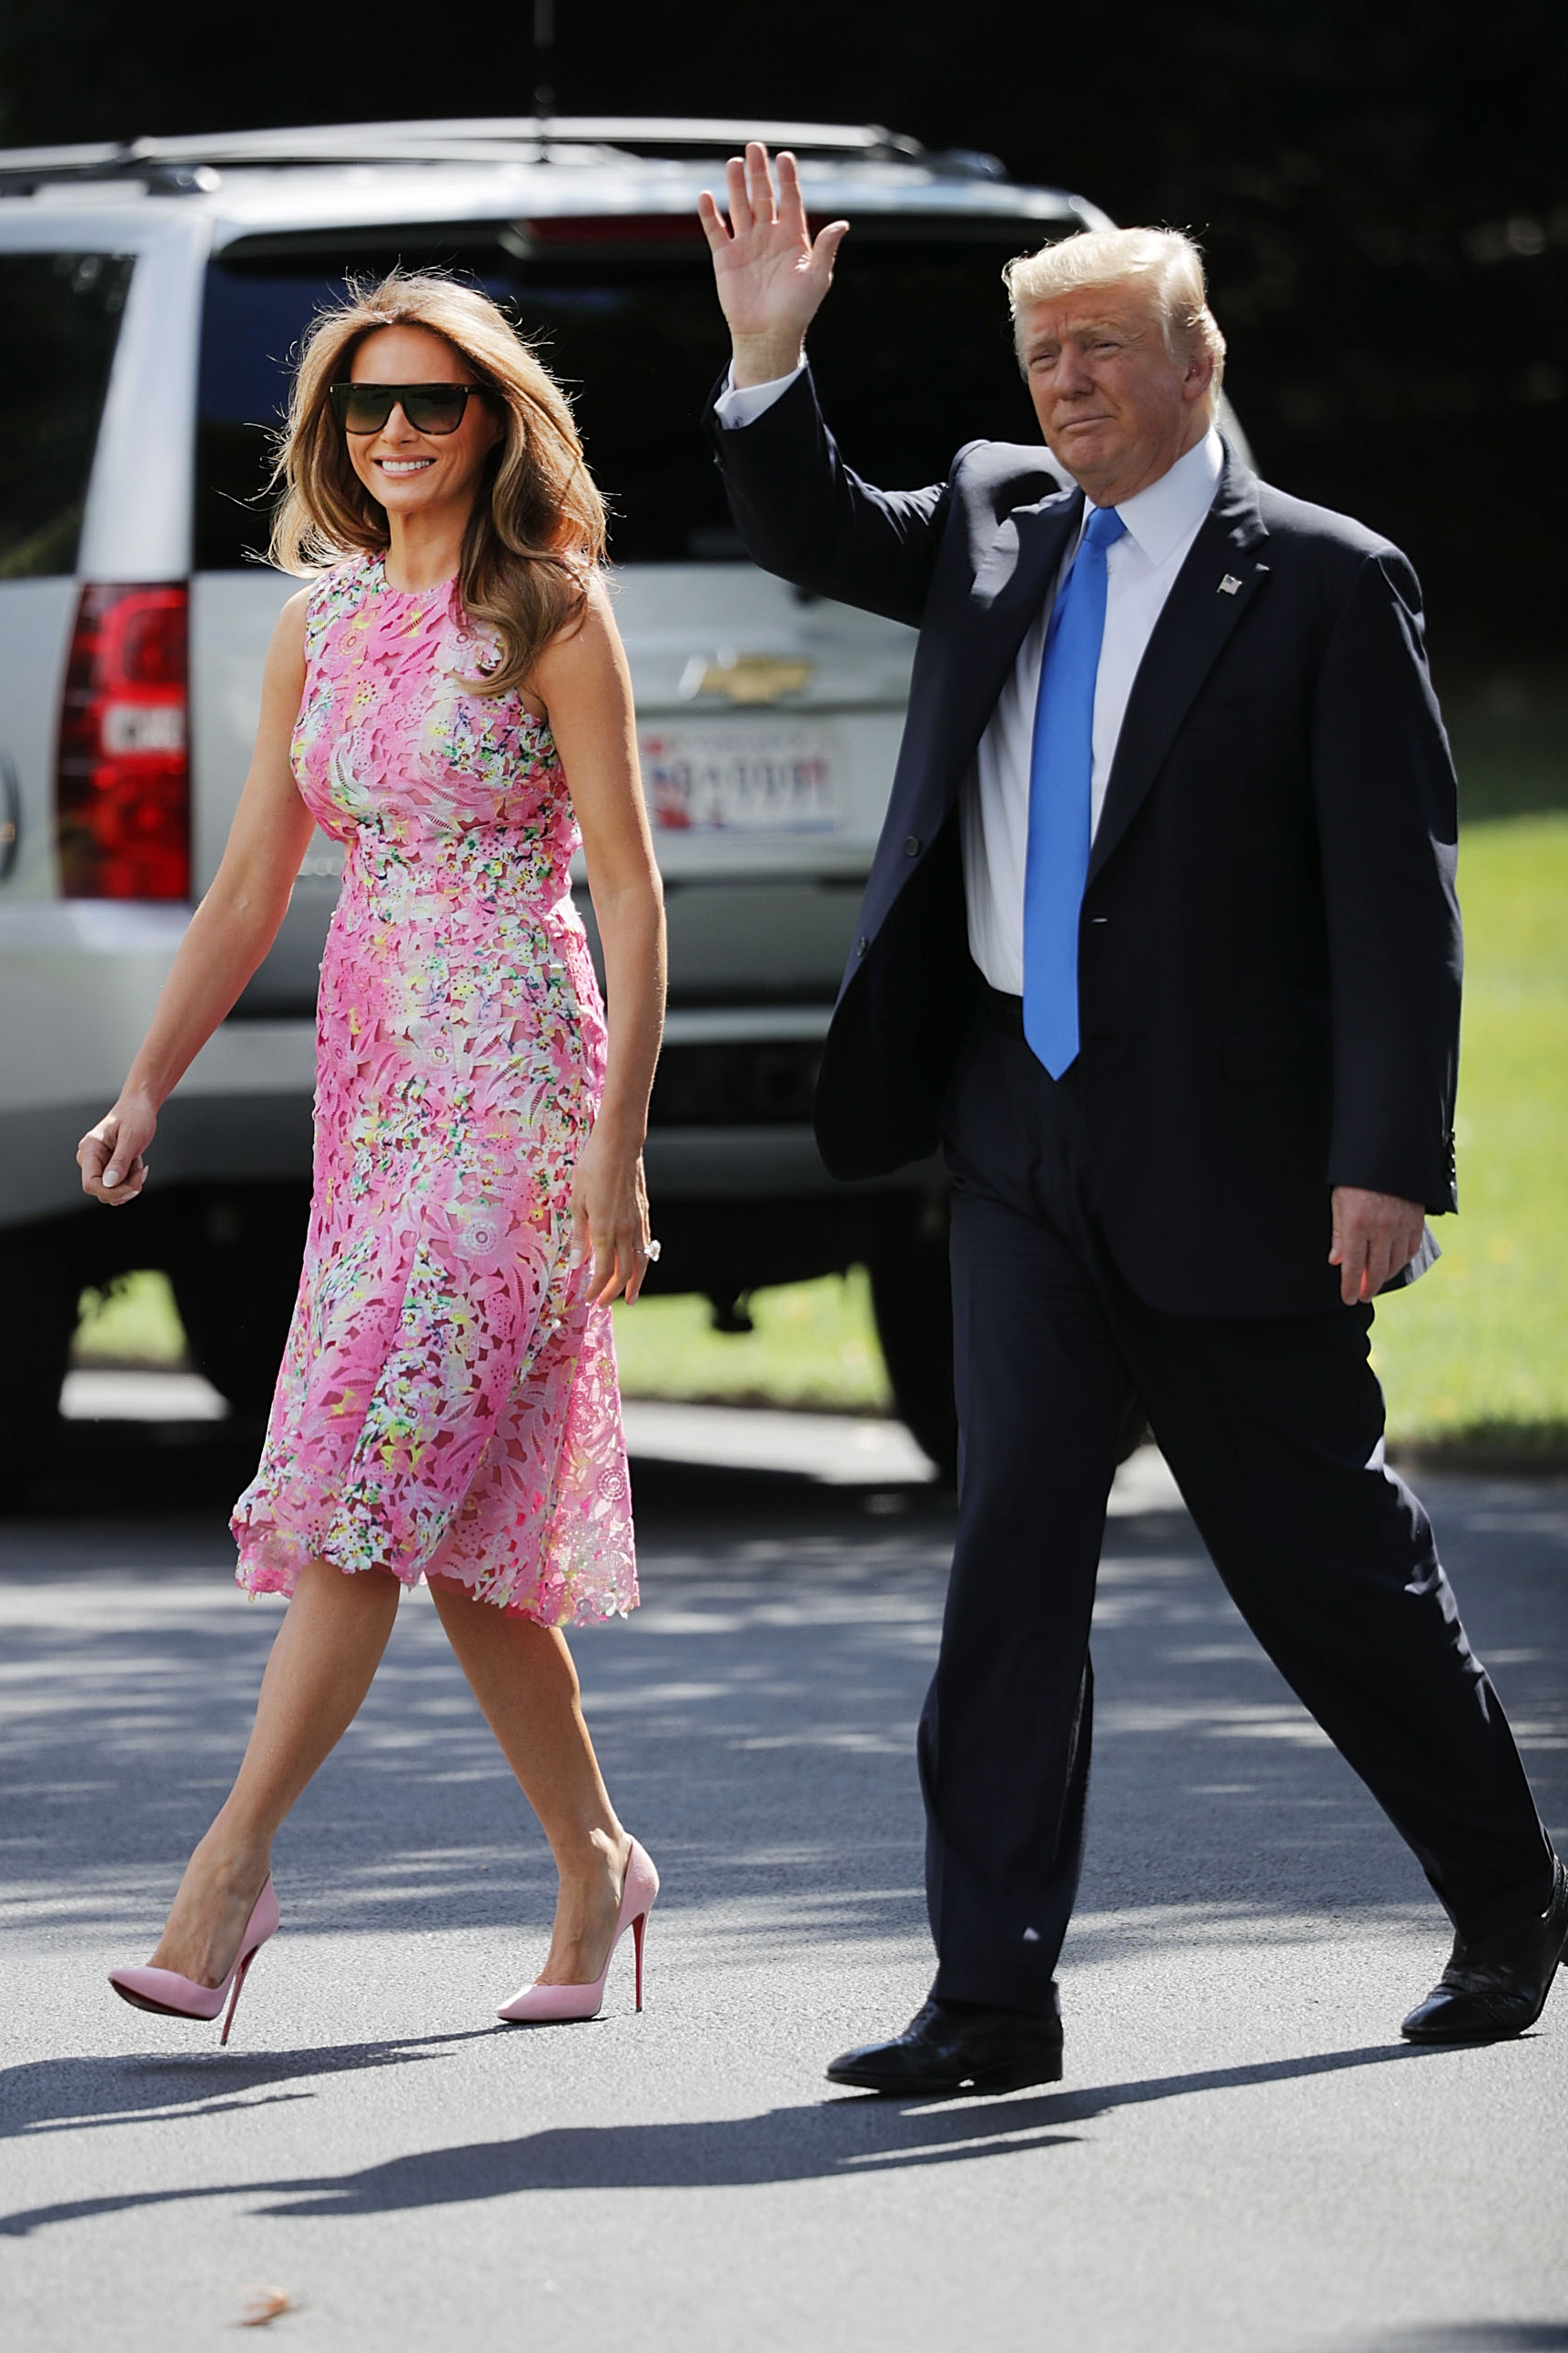 melania trump wears a bright pink monique lhuillier dress